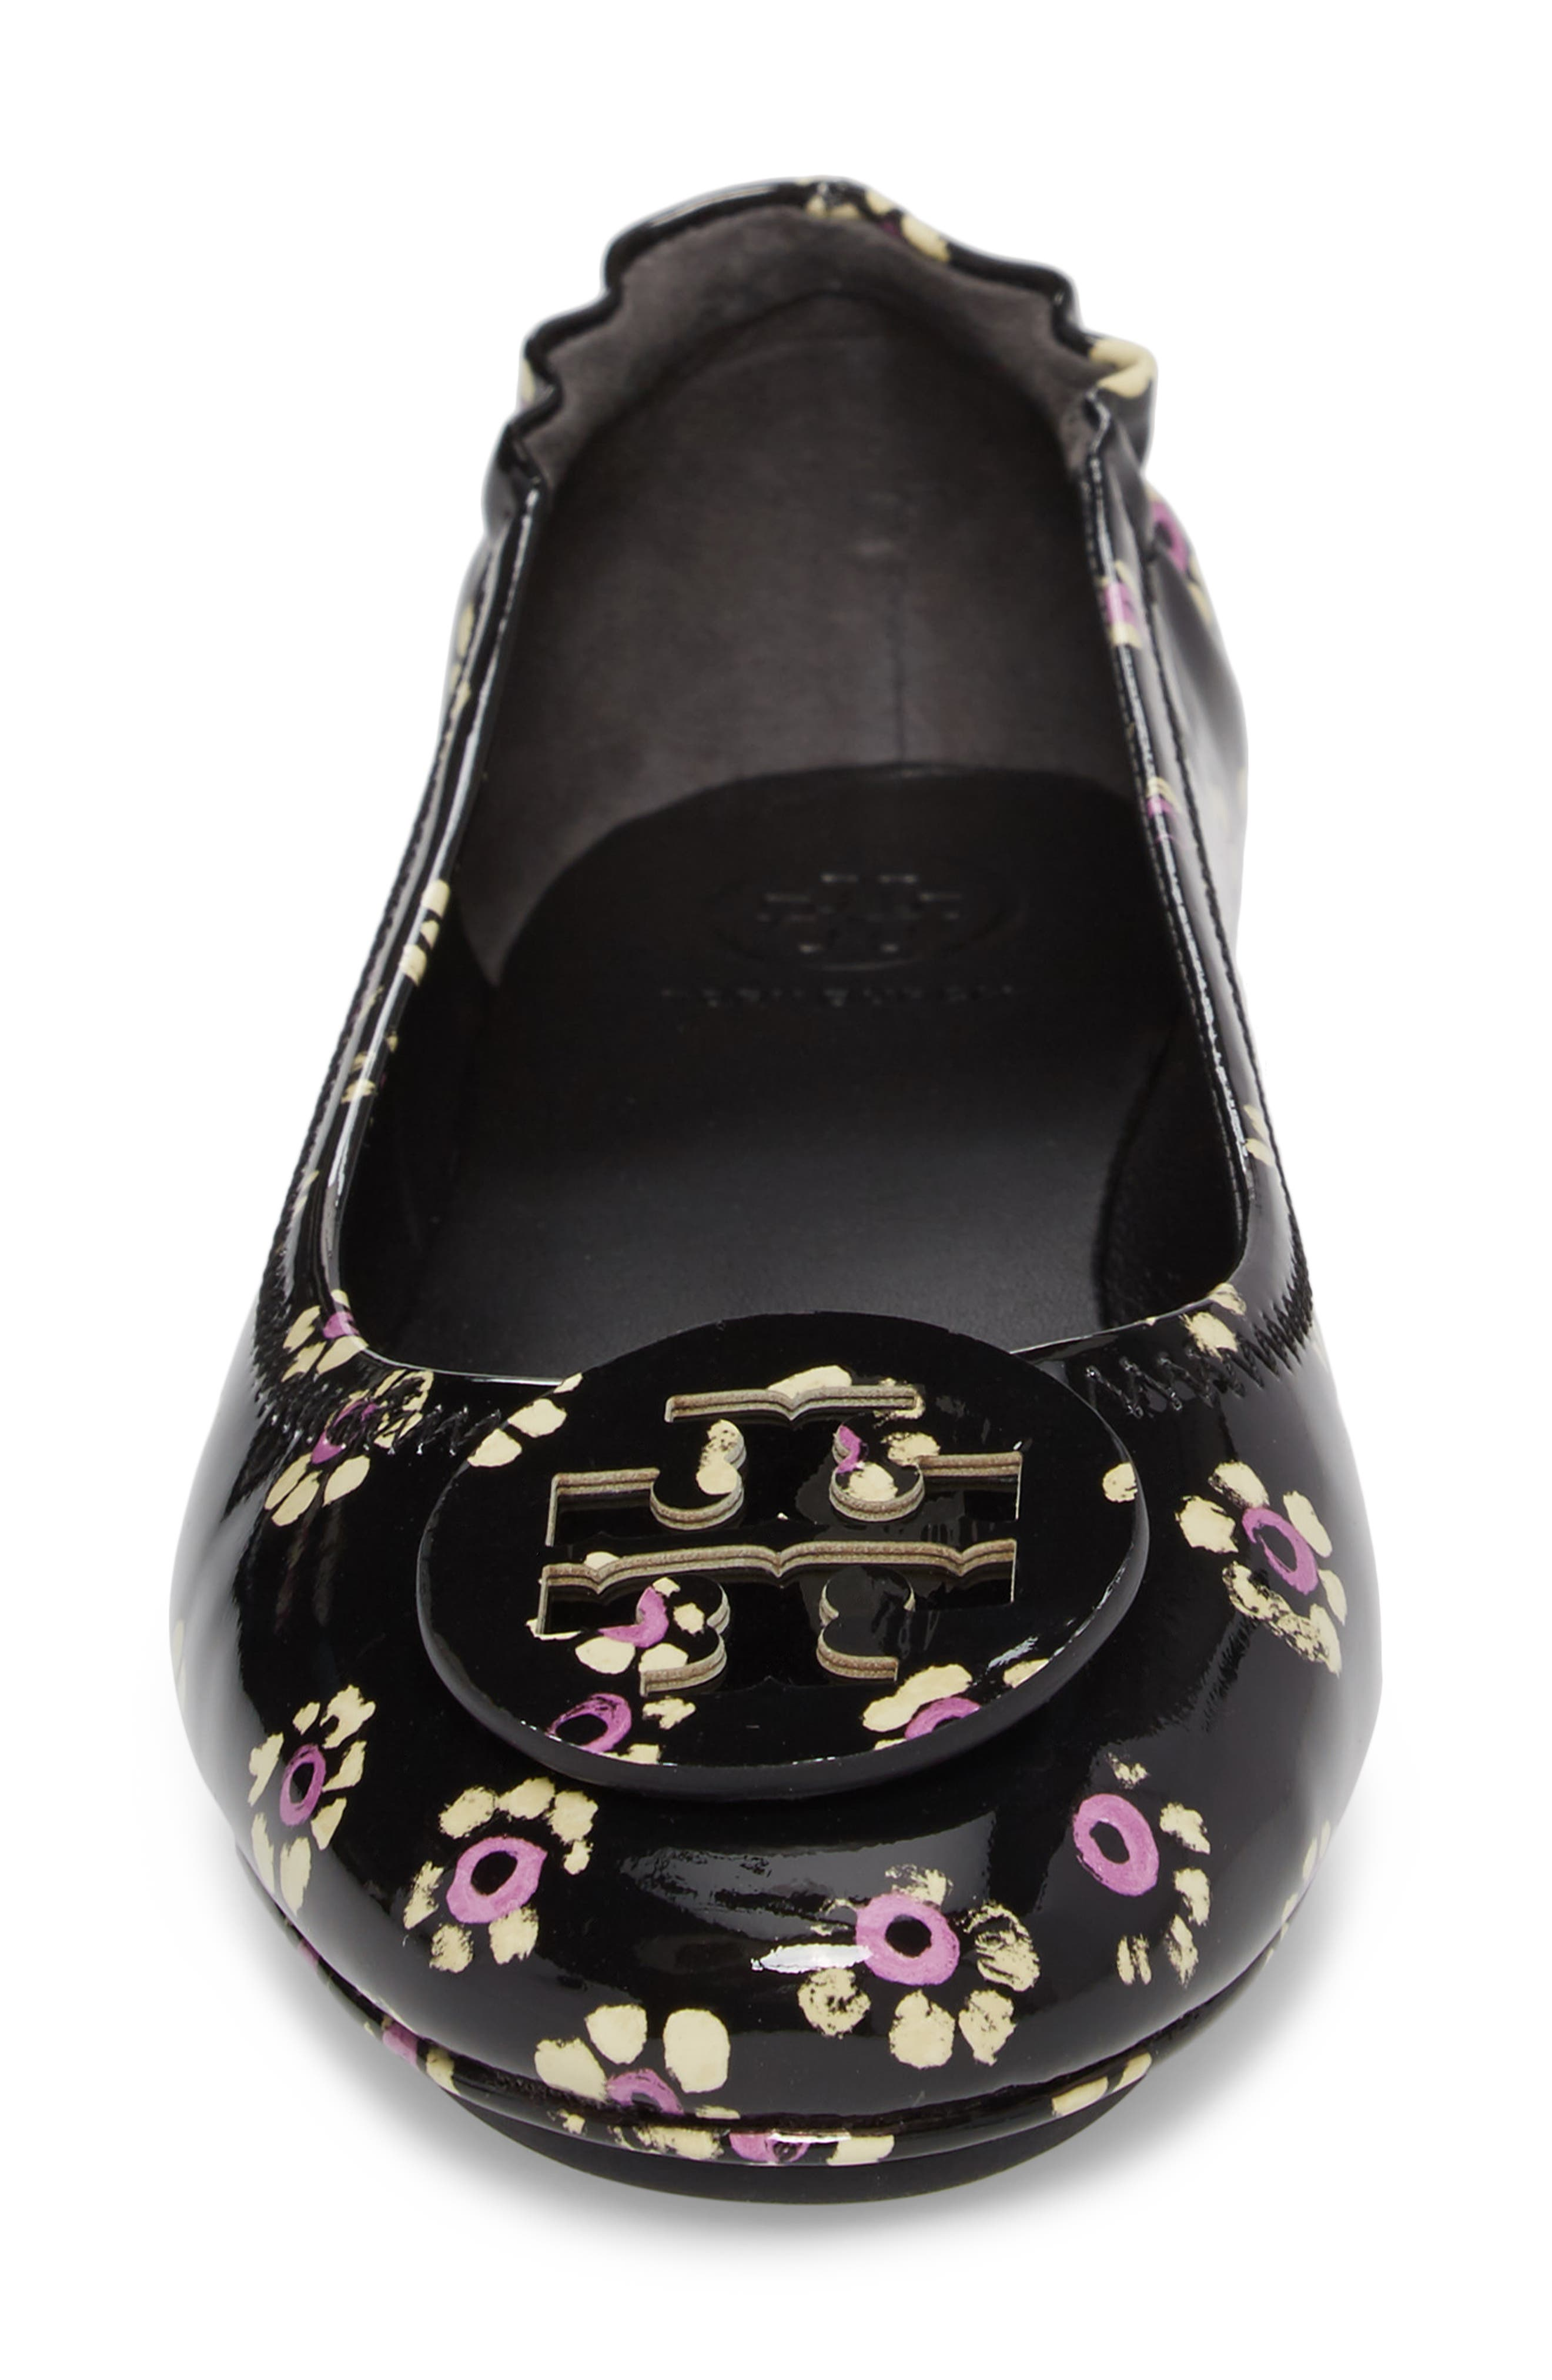 'Minnie' Travel Ballet Flat,                             Alternate thumbnail 4, color,                             Black Stamped Floral